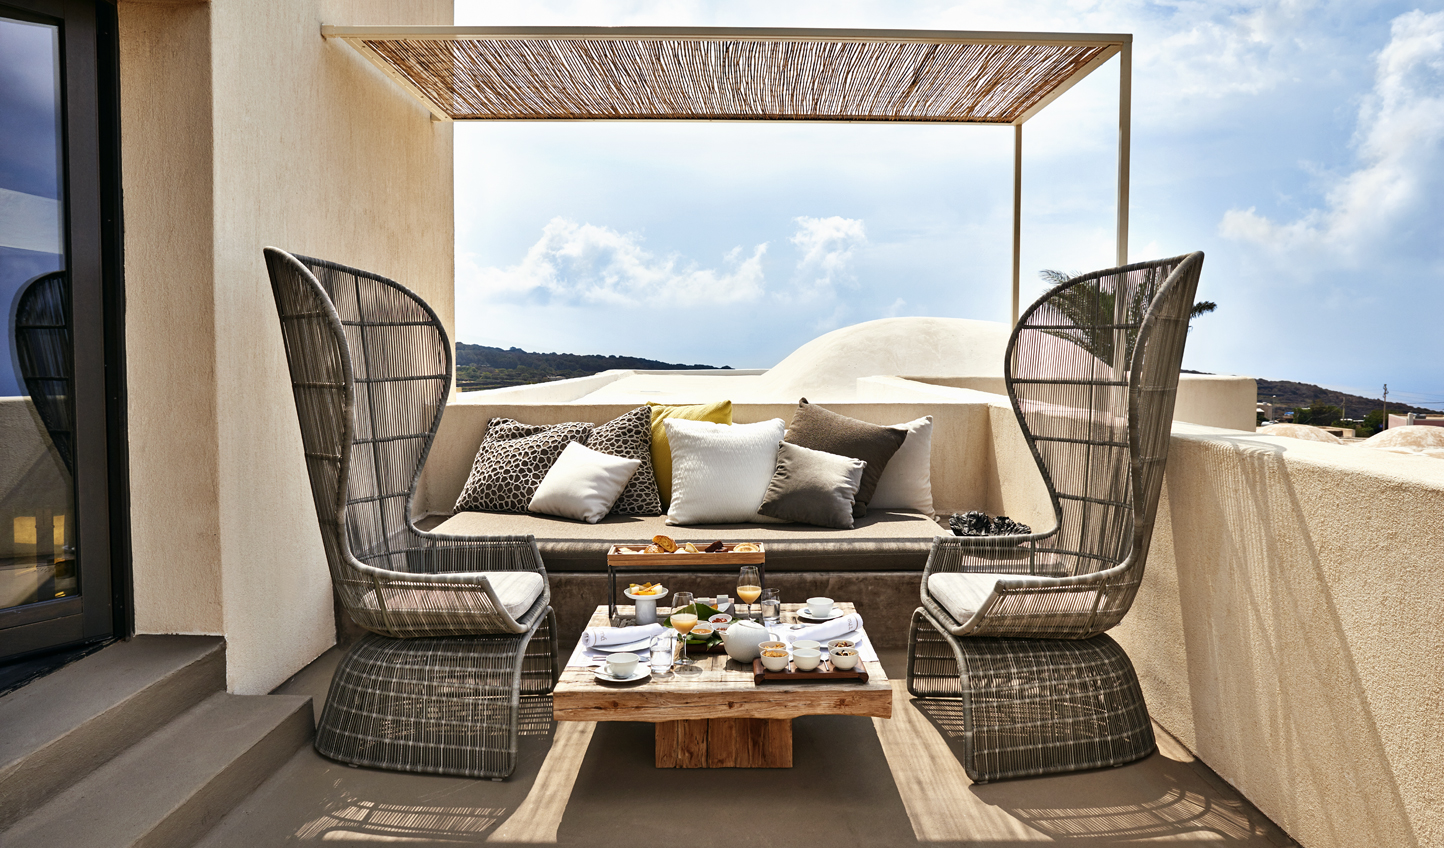 Dine out on your private terrace